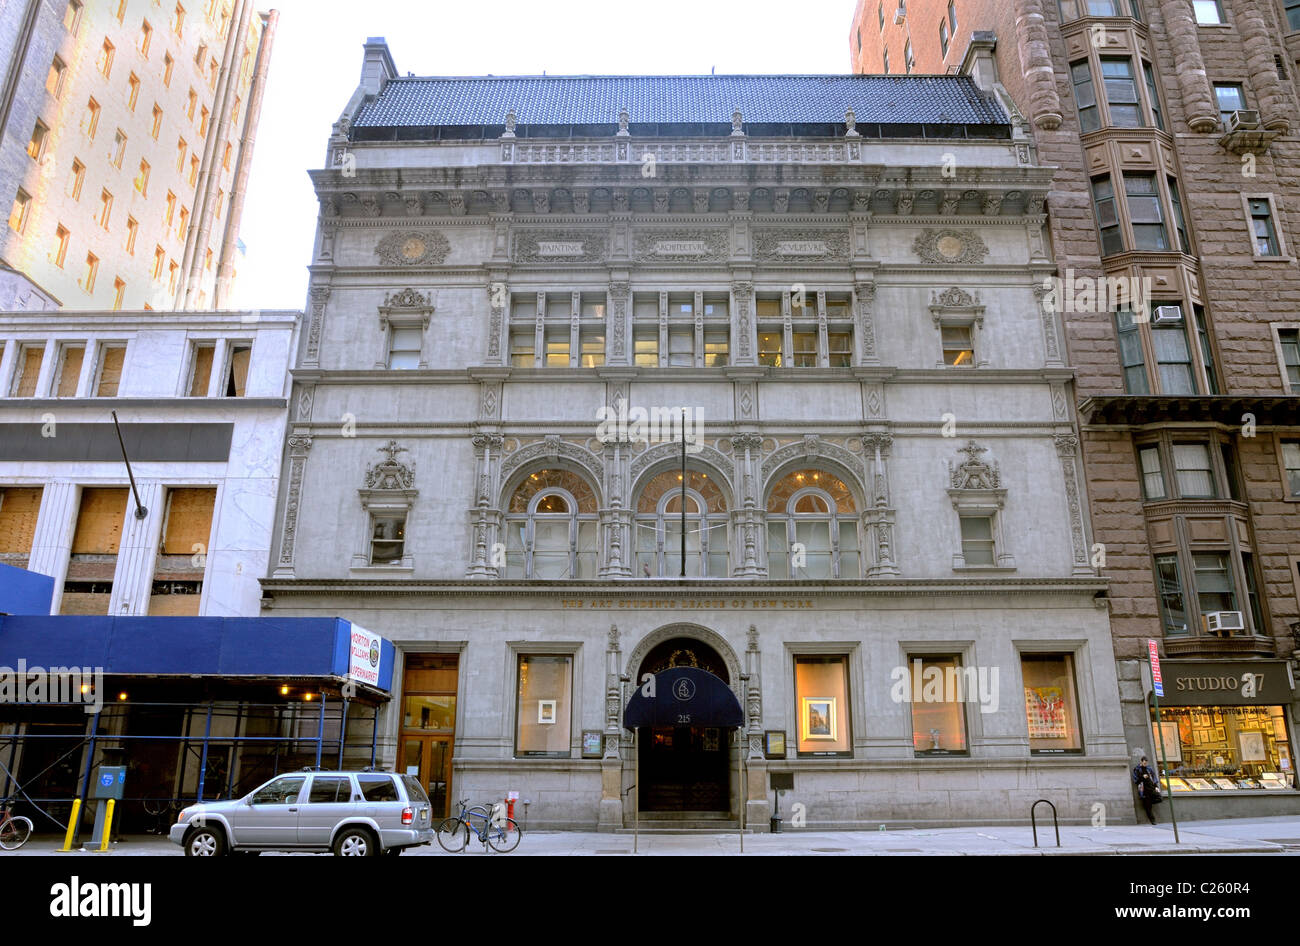 The Art Students League of New York building on West 57th Street in New York City. - Stock Image